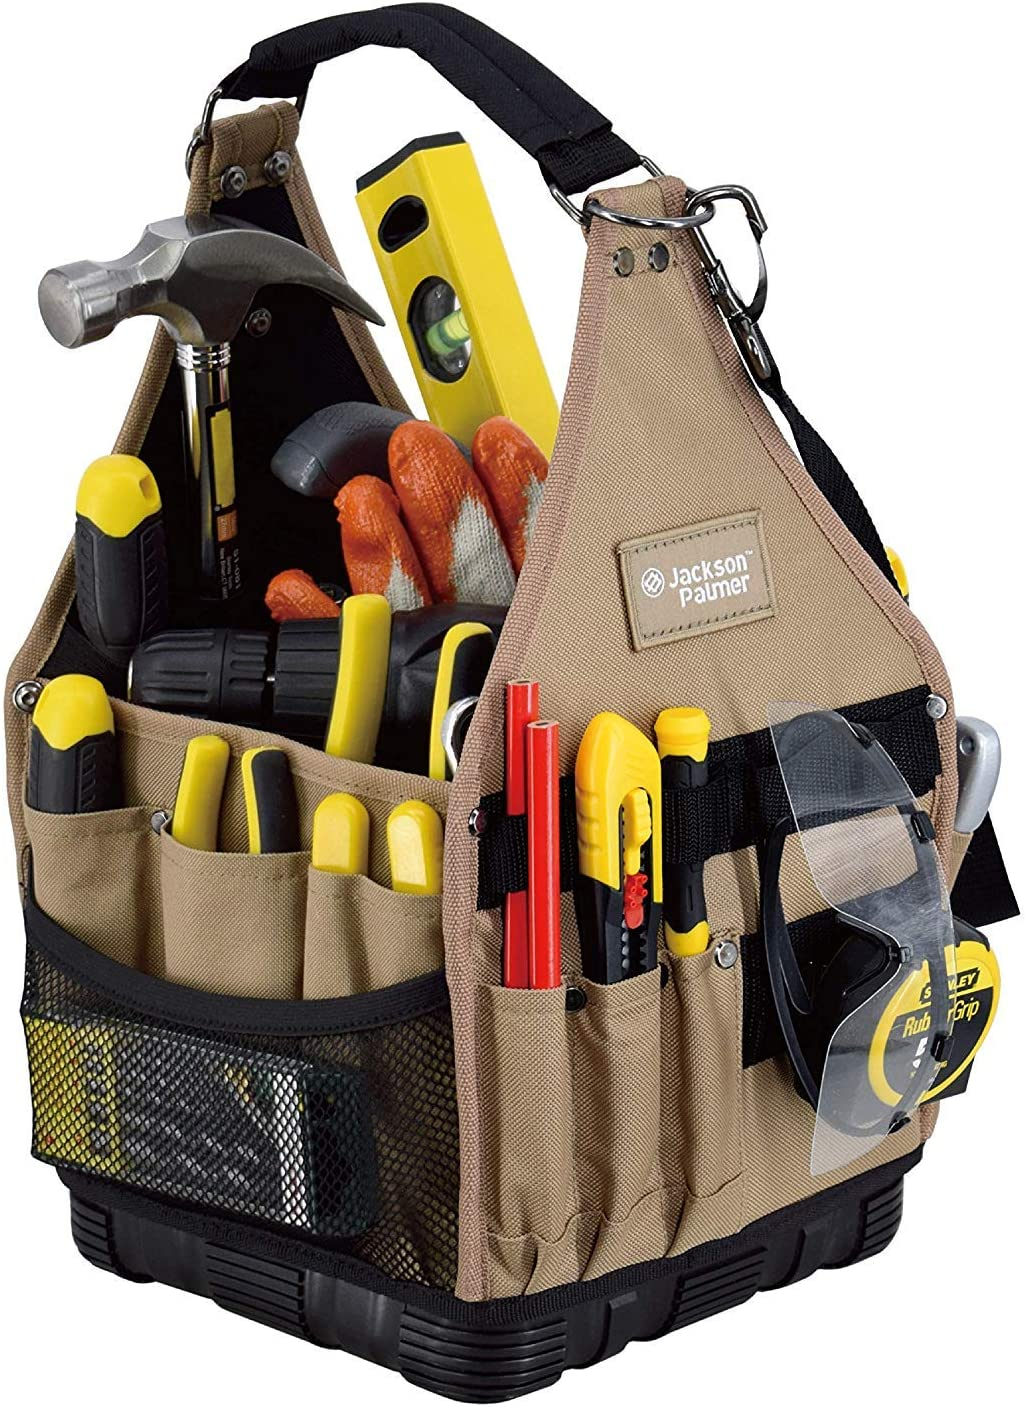 "Jackson Palmer Medium 9"" Maintenance best Tool Bag"